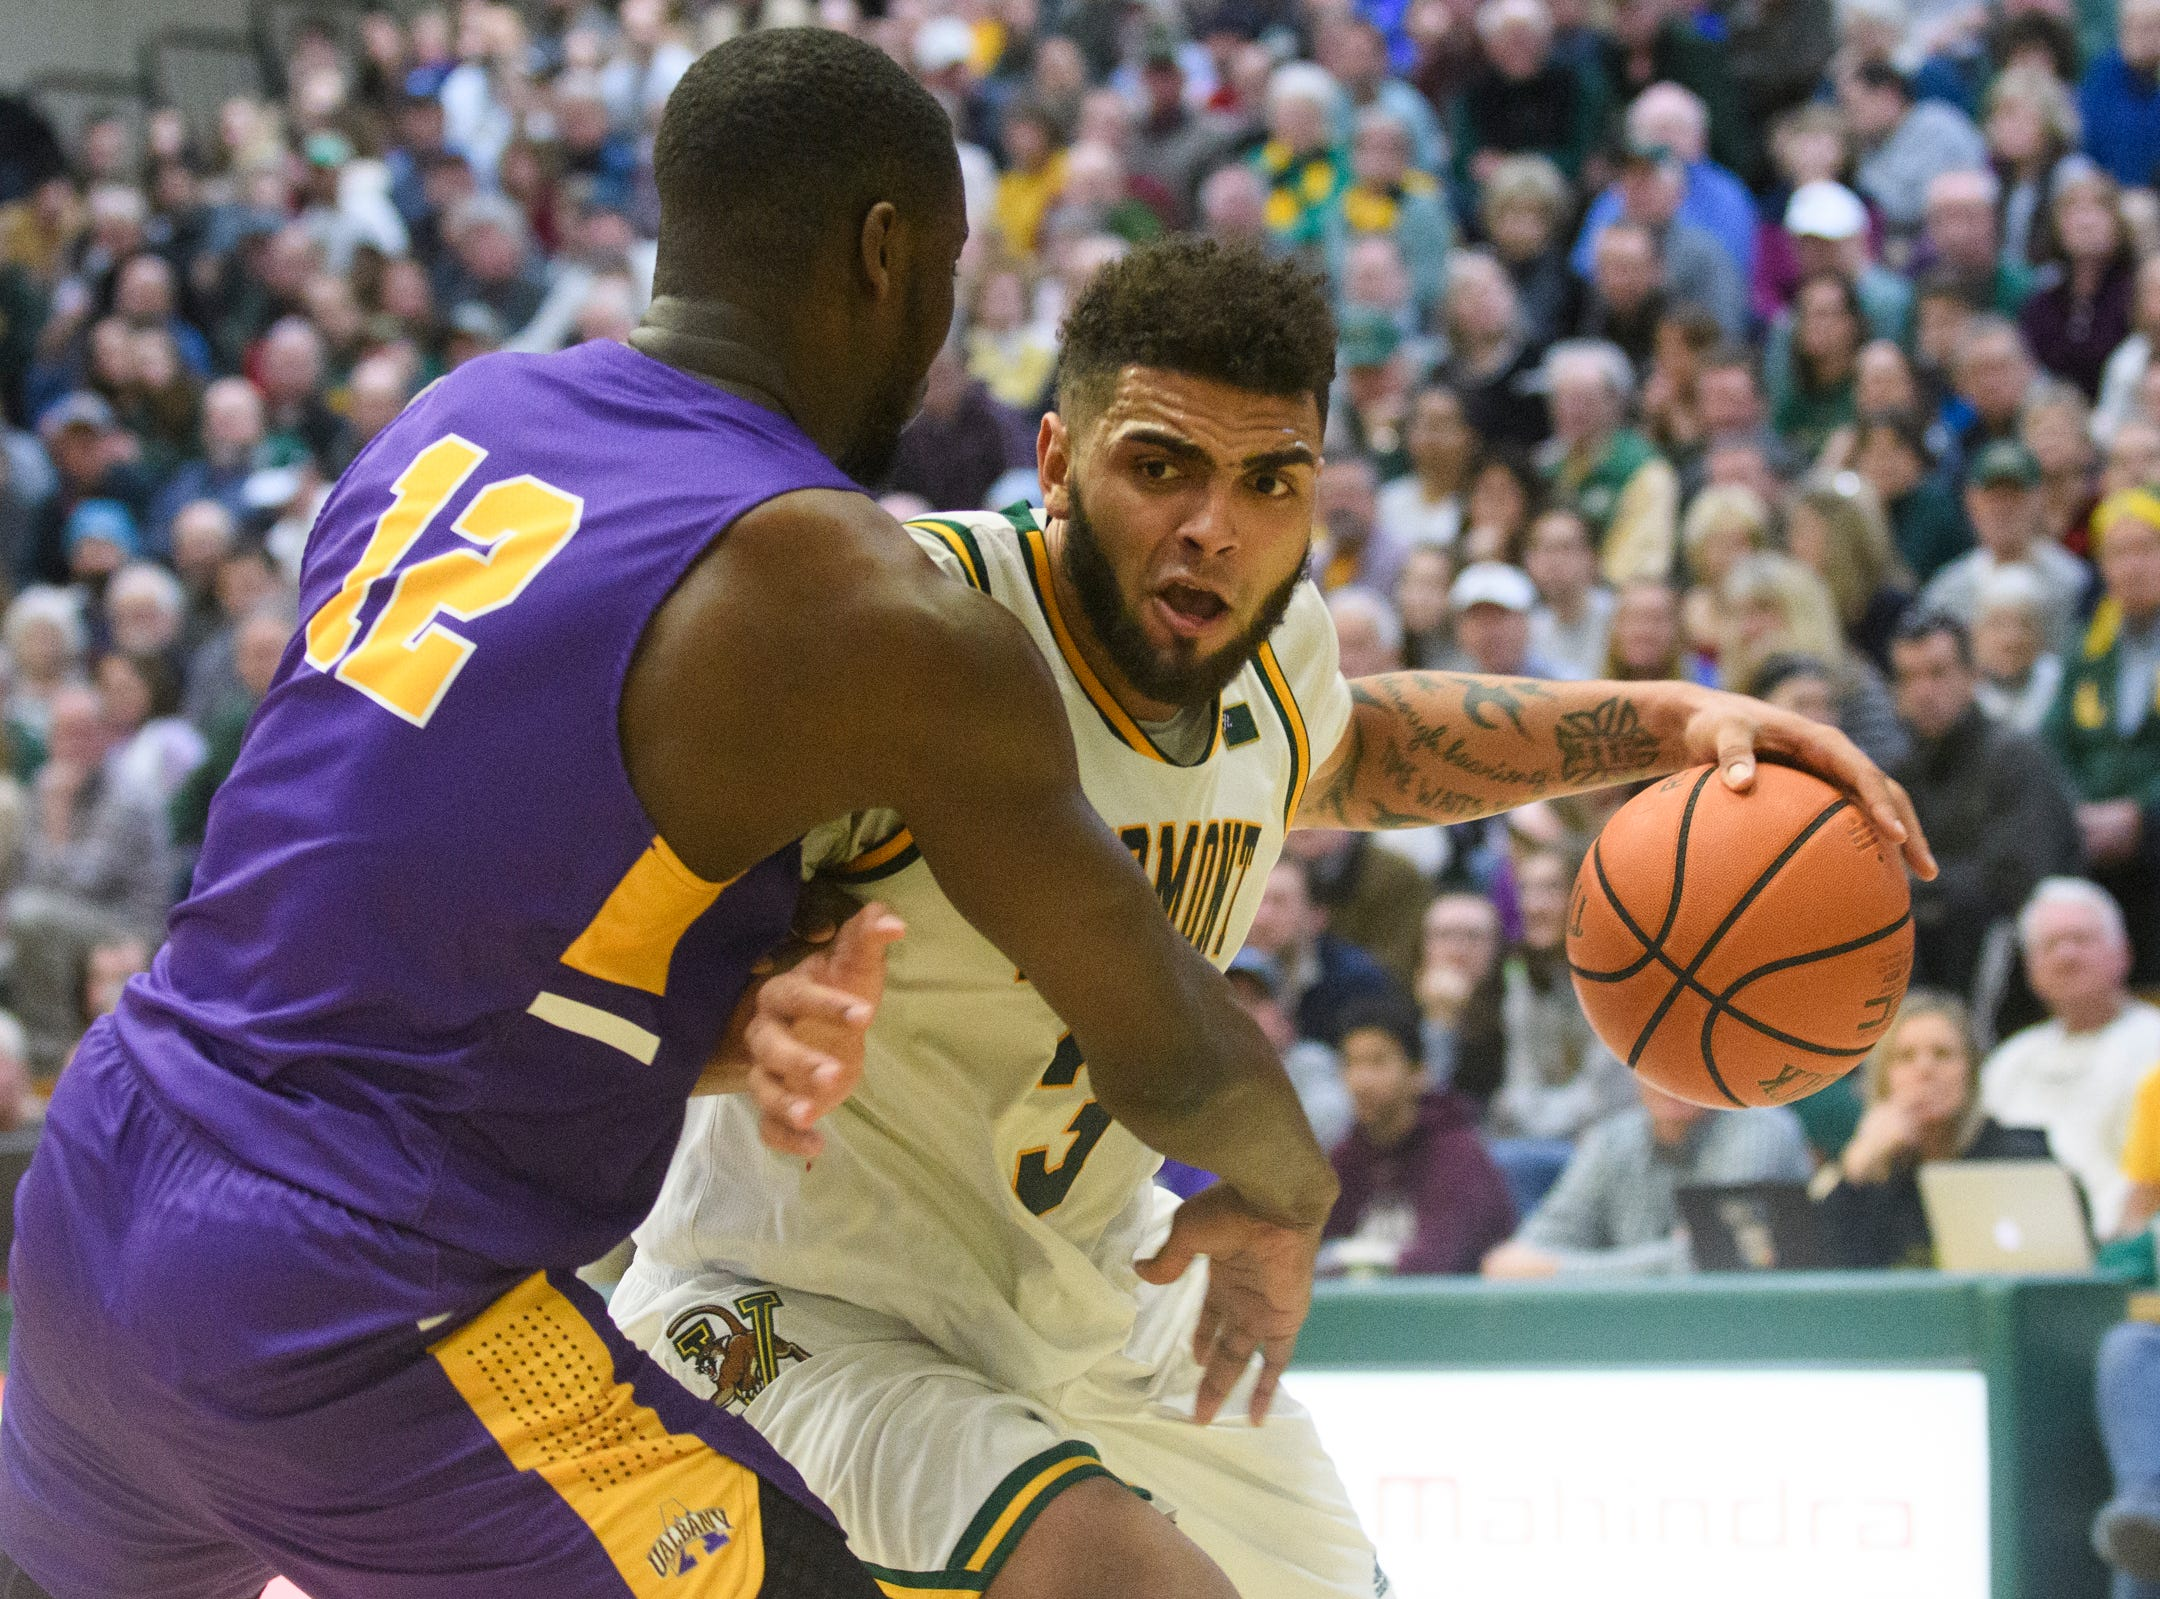 Vermont forward Anthony Lamb (3) drives to the hoop past Albany's Devonte Campbell (12) during the men's basketball game between the Albany Great Danes and the Vermont Catamounts at Patrick Gym on Saturday February 9, 2019 in Burlington, Vermont.